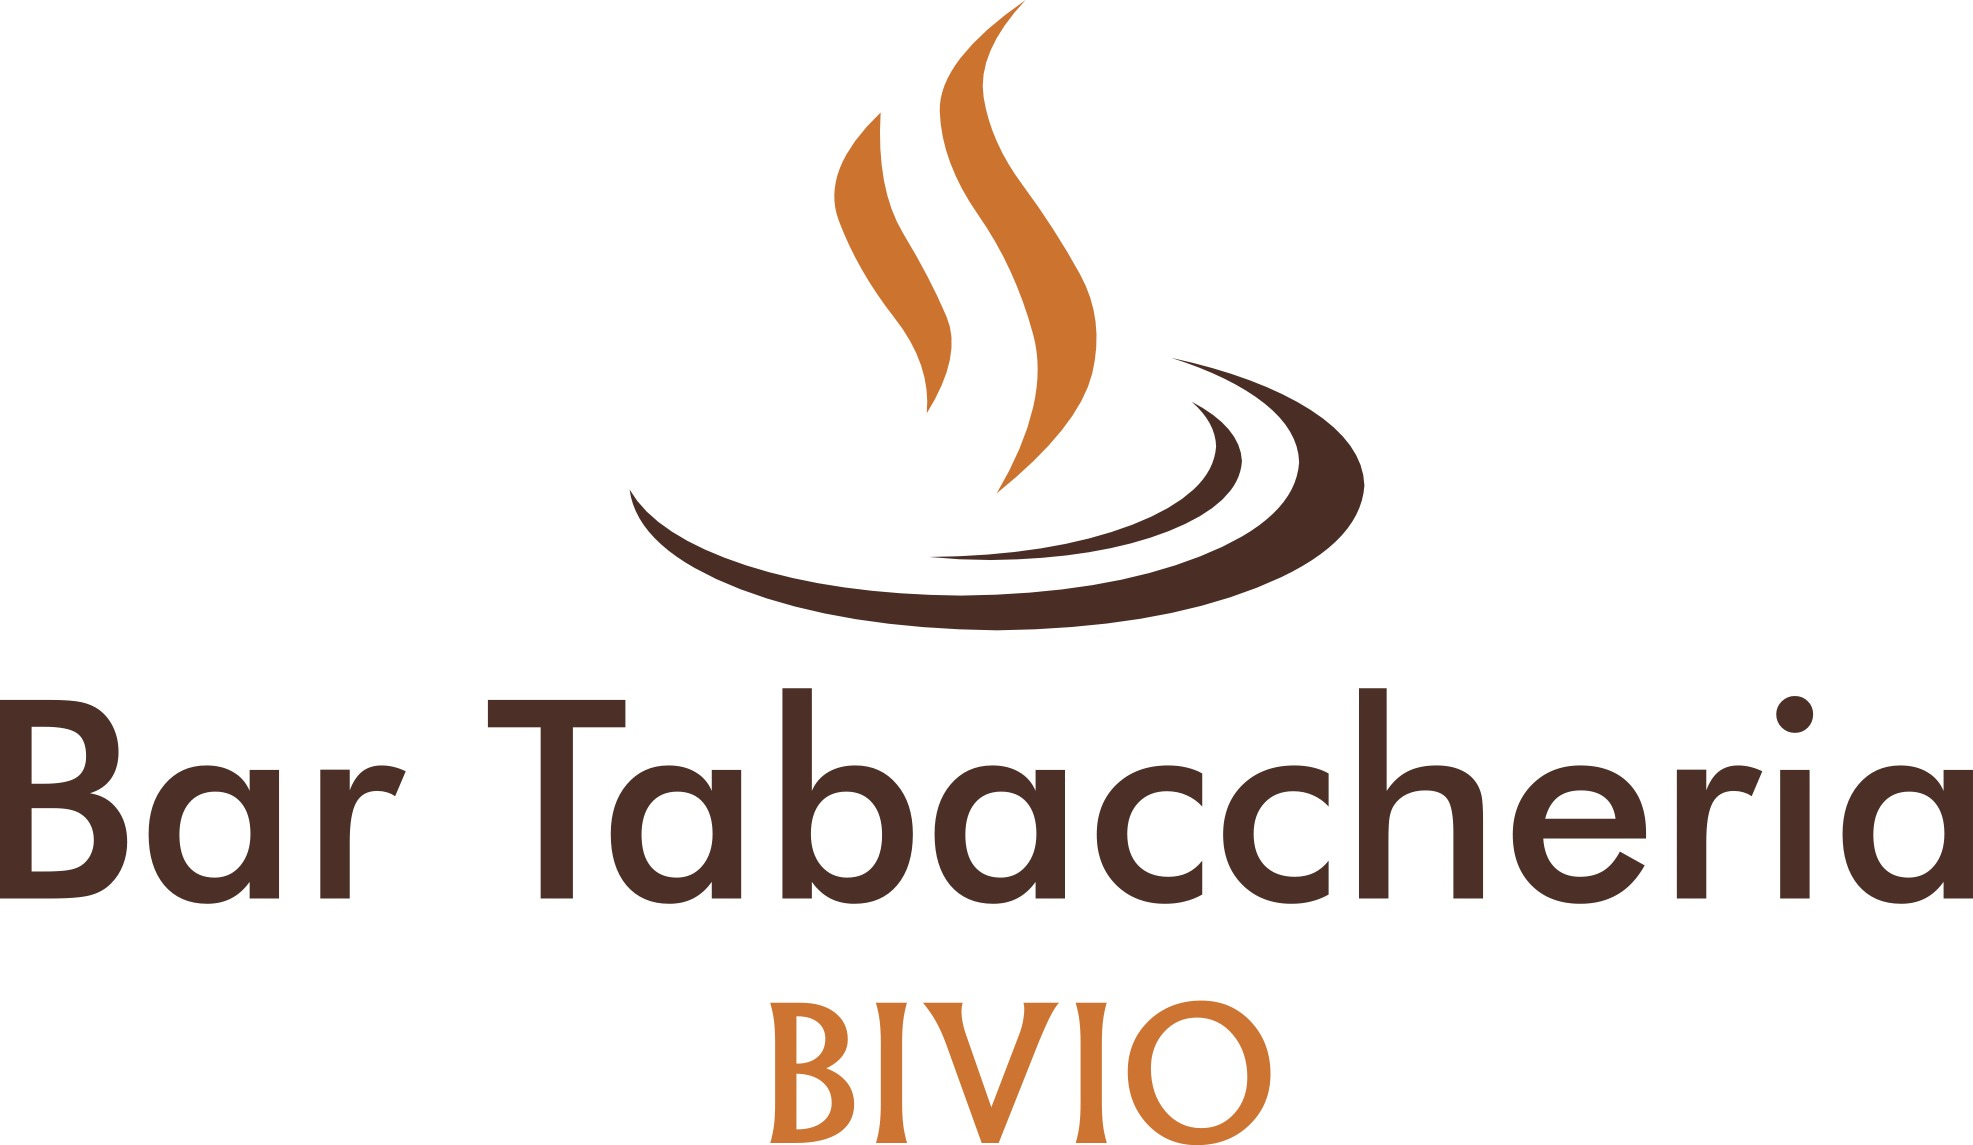 Bar Tabaccheria Bivio